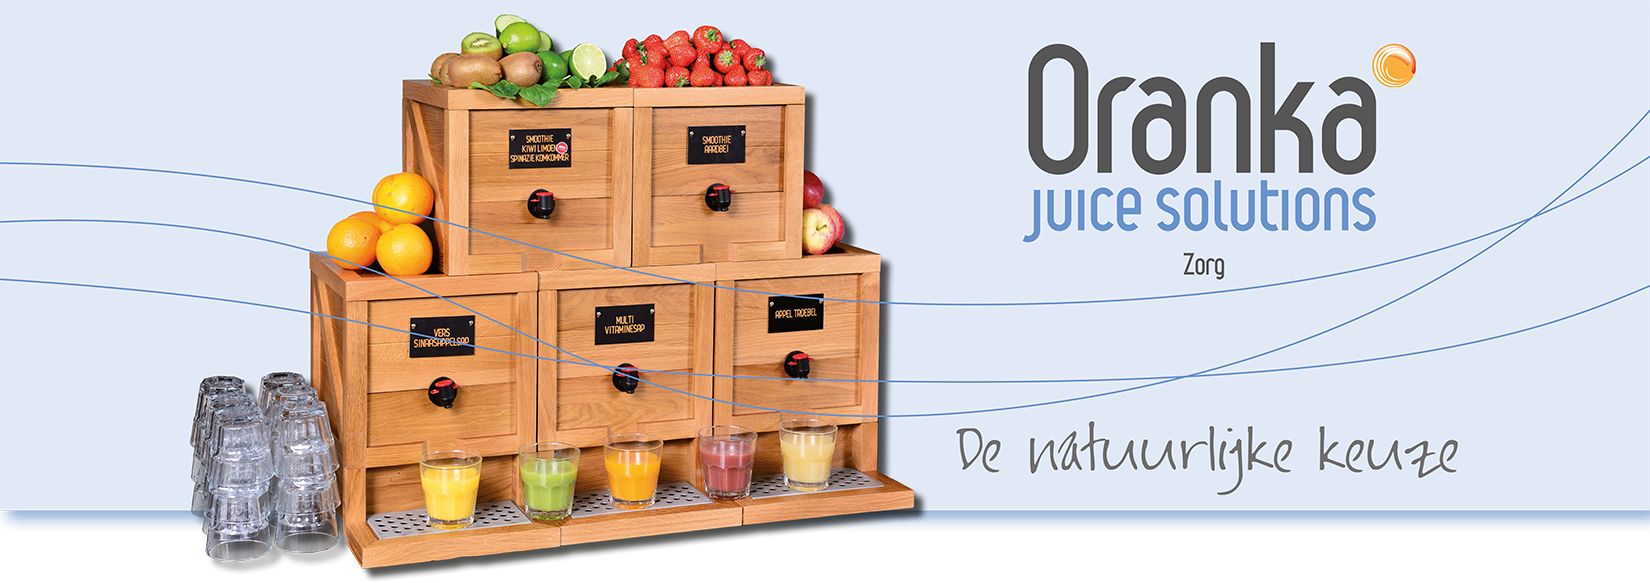 Oranka Juice Solutions - footer zorg